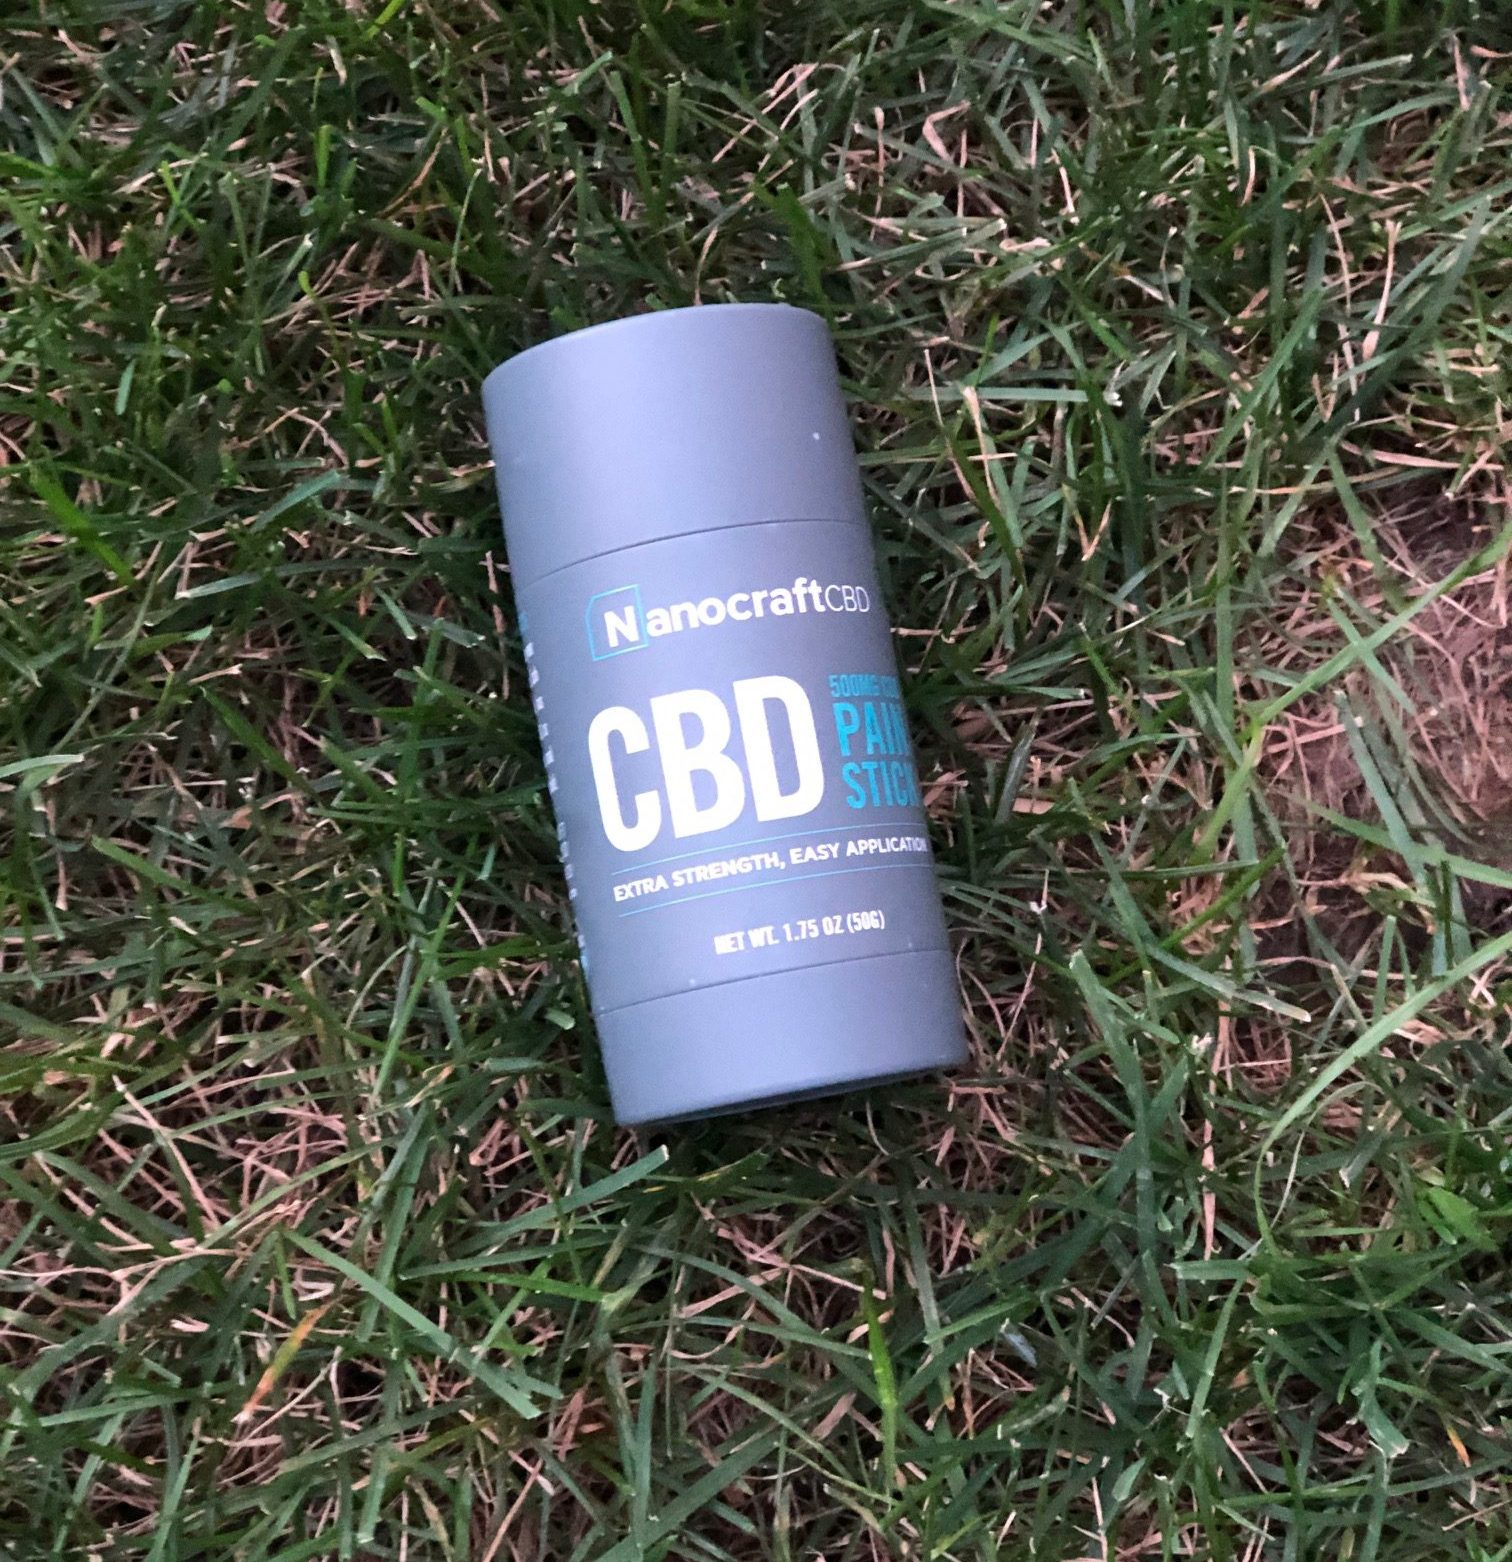 nanocraft cbd pain stick placed on green grass